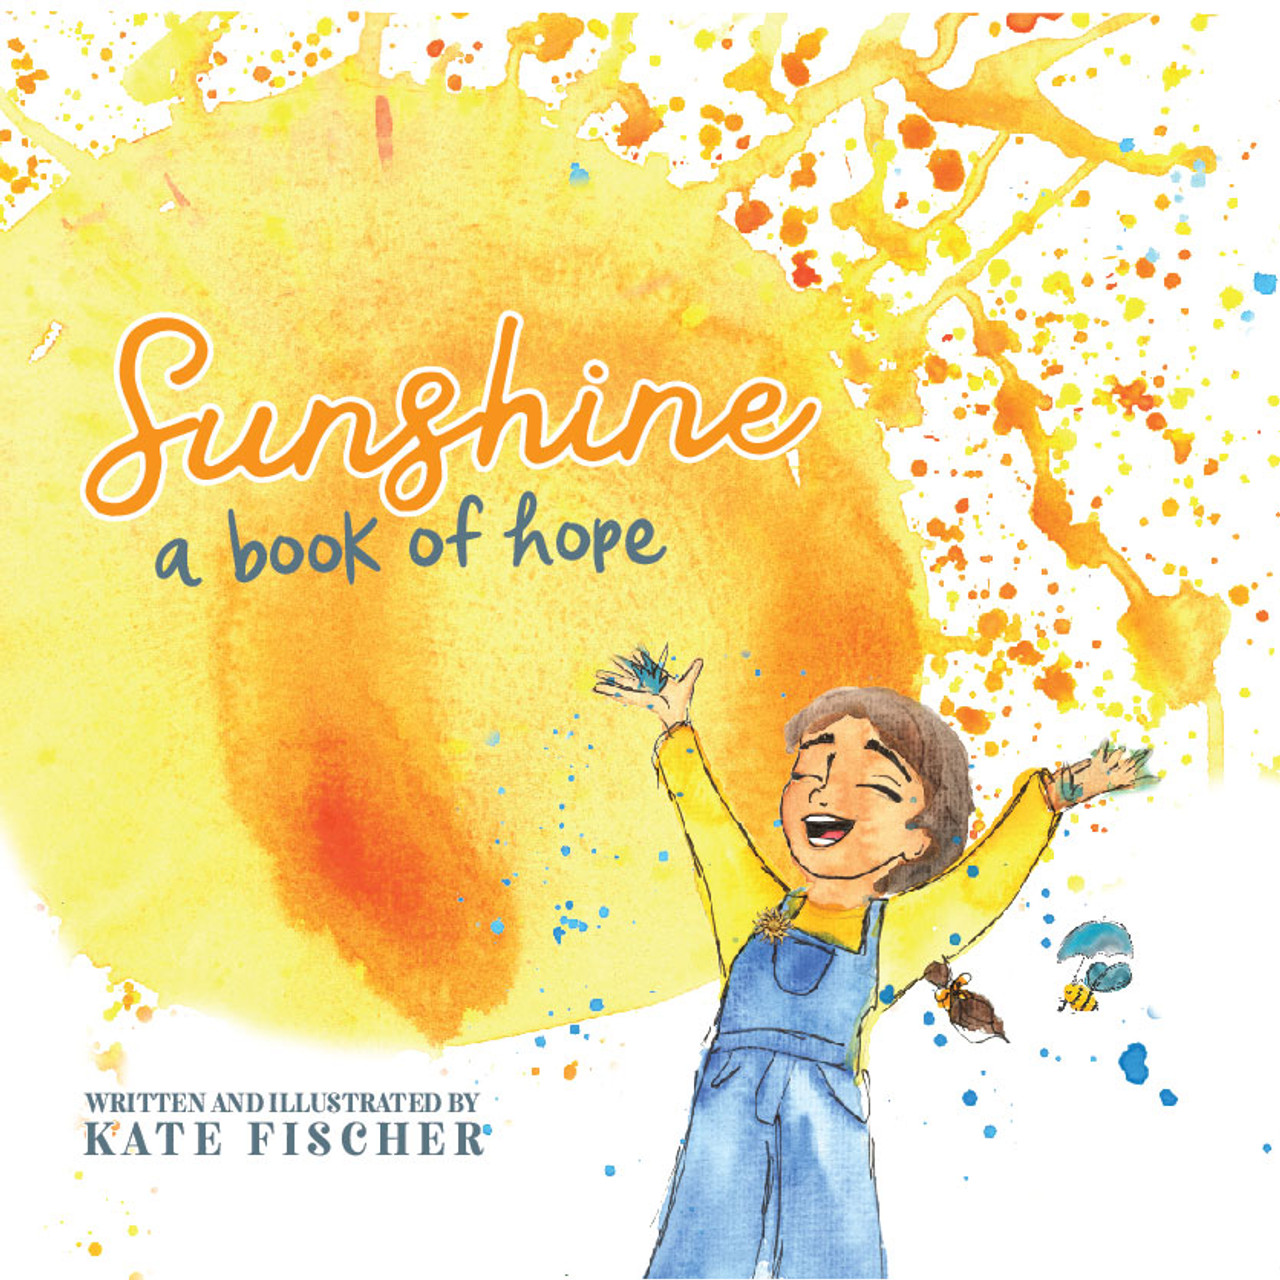 Sunshine: A Book of Hope